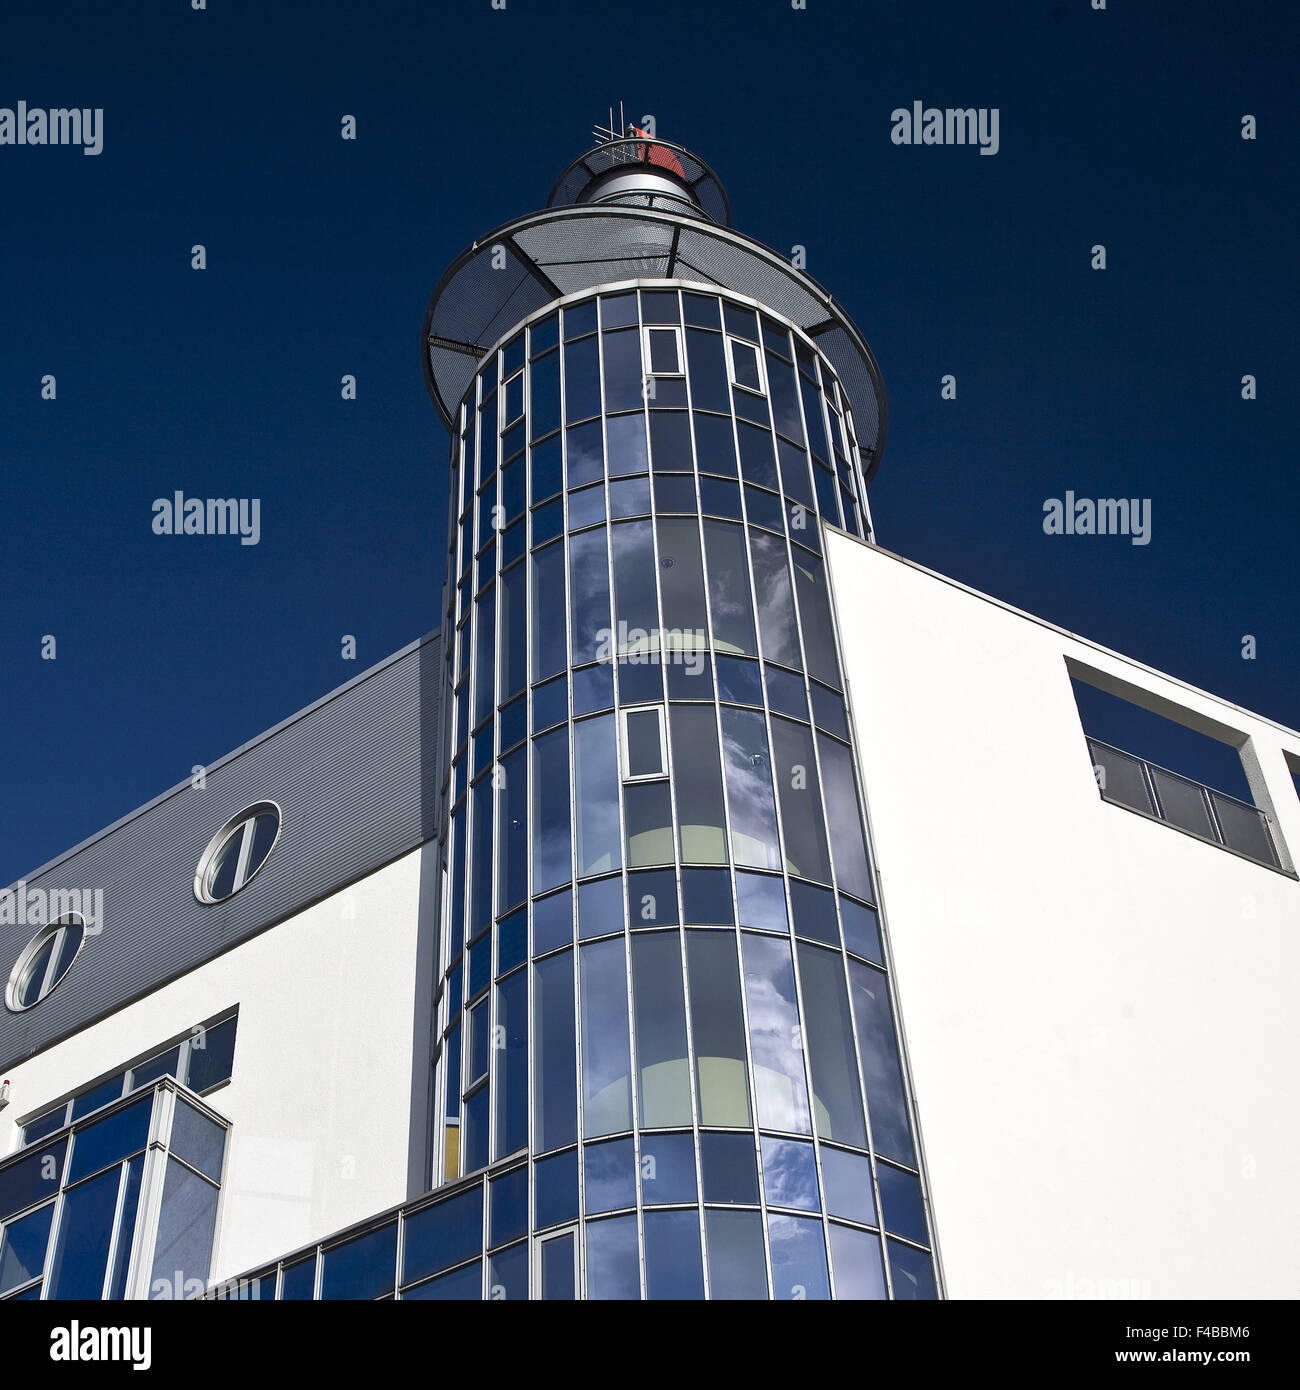 L'architecture moderne, Dortmund, Allemagne. Photo Stock